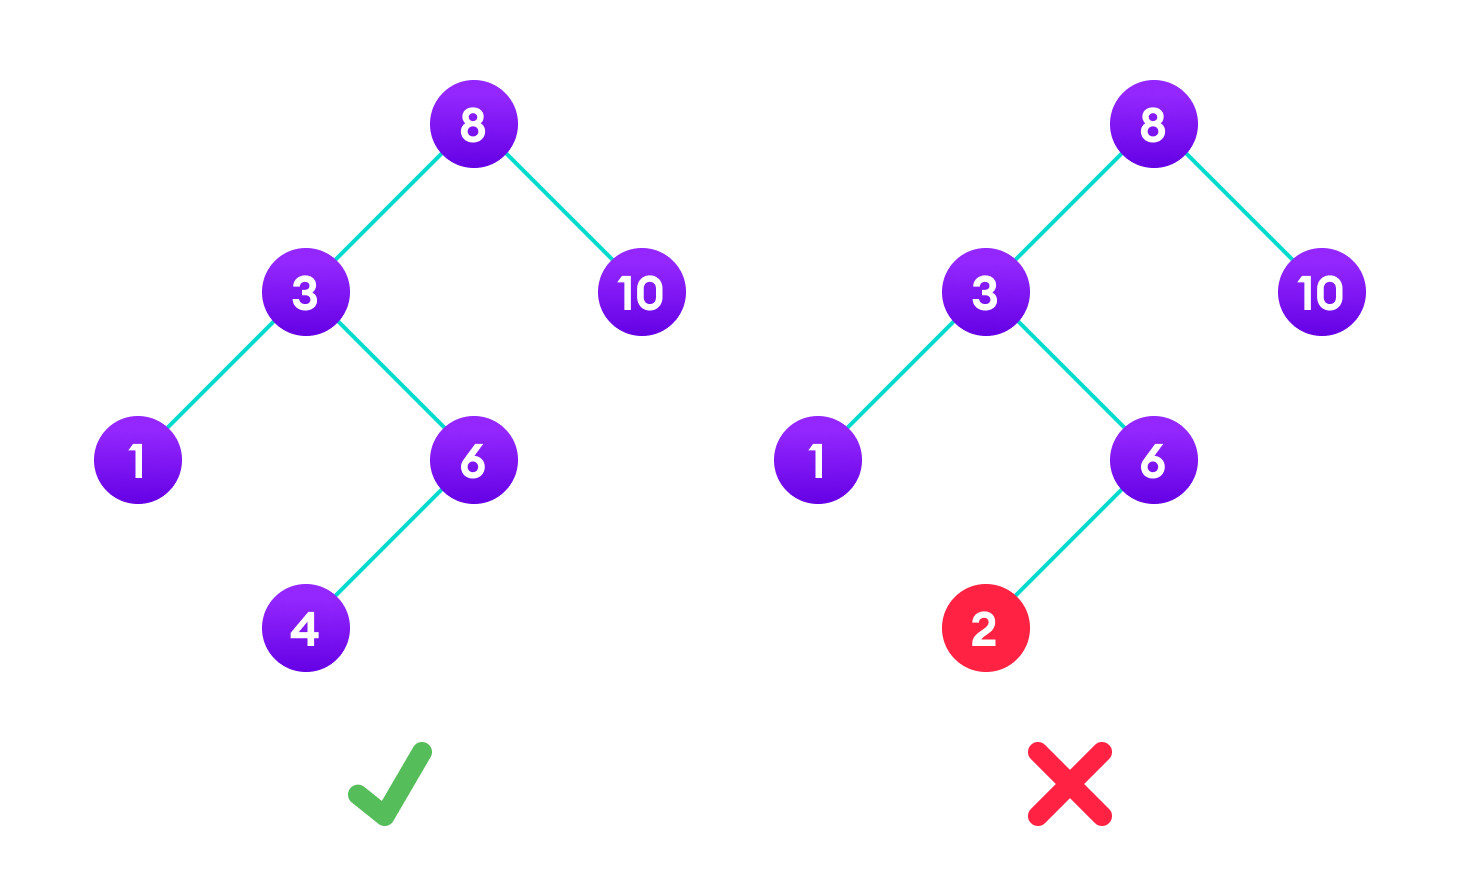 A tree having a right subtree with one value smaller than the root is shown to demonstrate that it is not a valid binary search tree